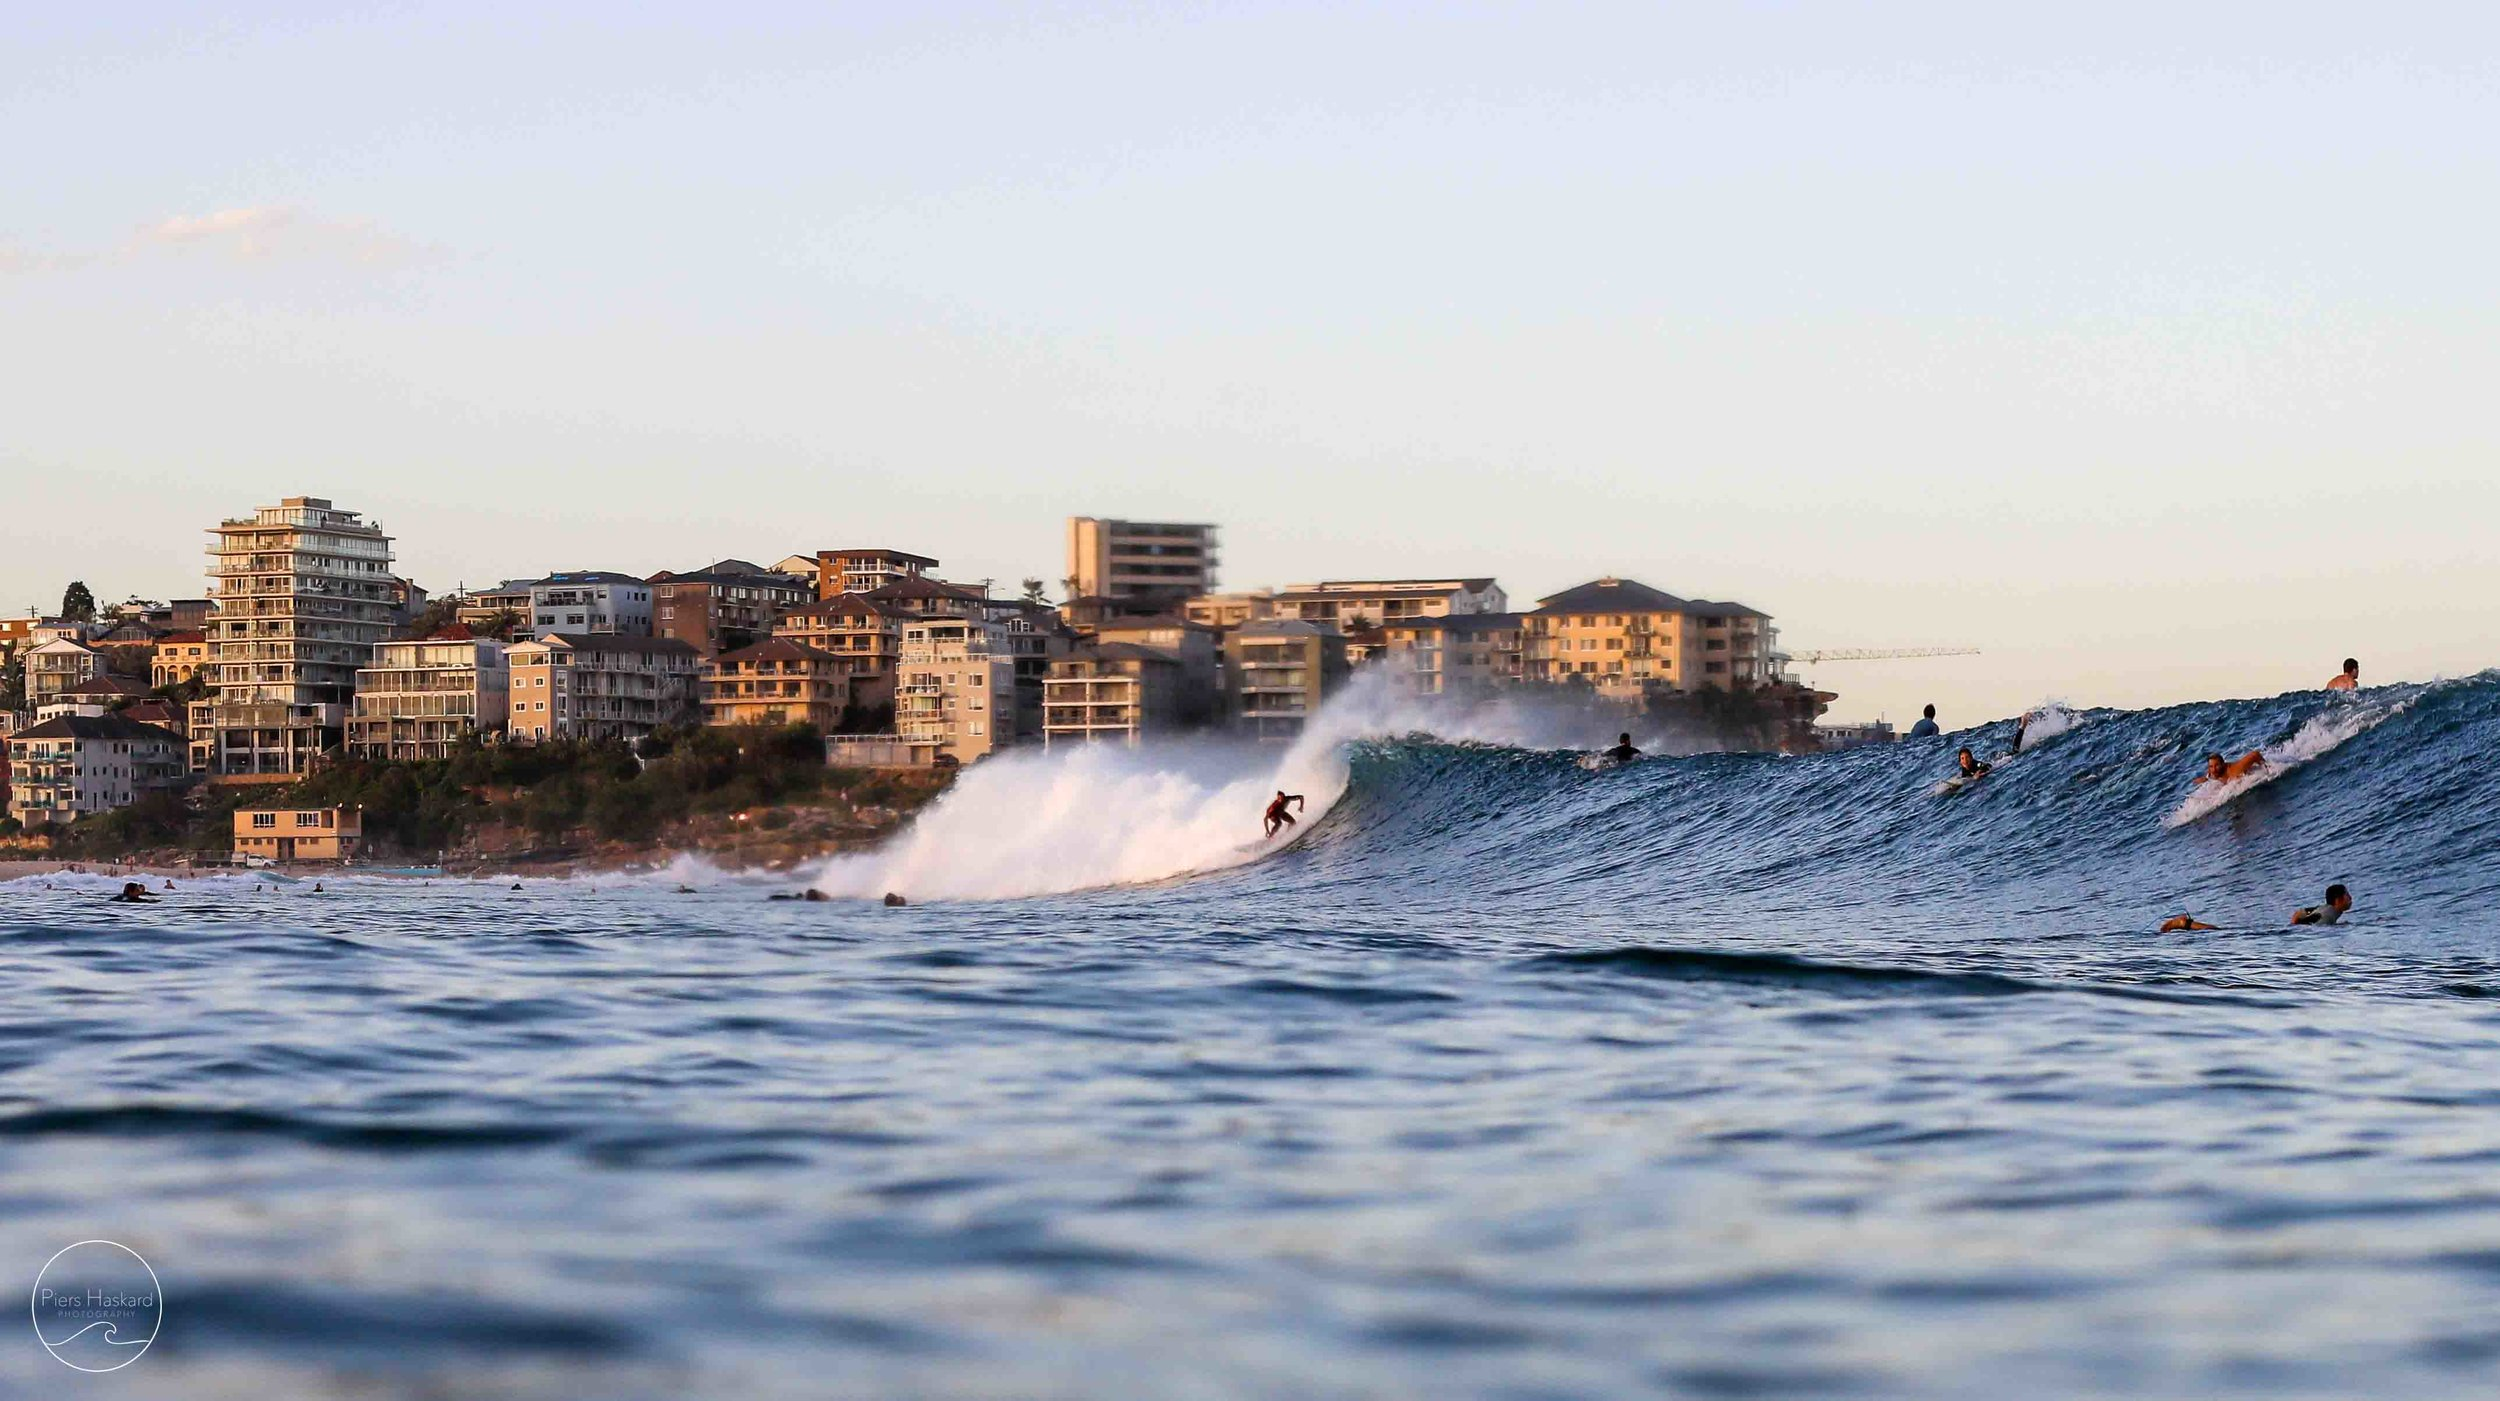 'Queenscliff Swell' - Available in the 'Life On The Coast' category.   BUY